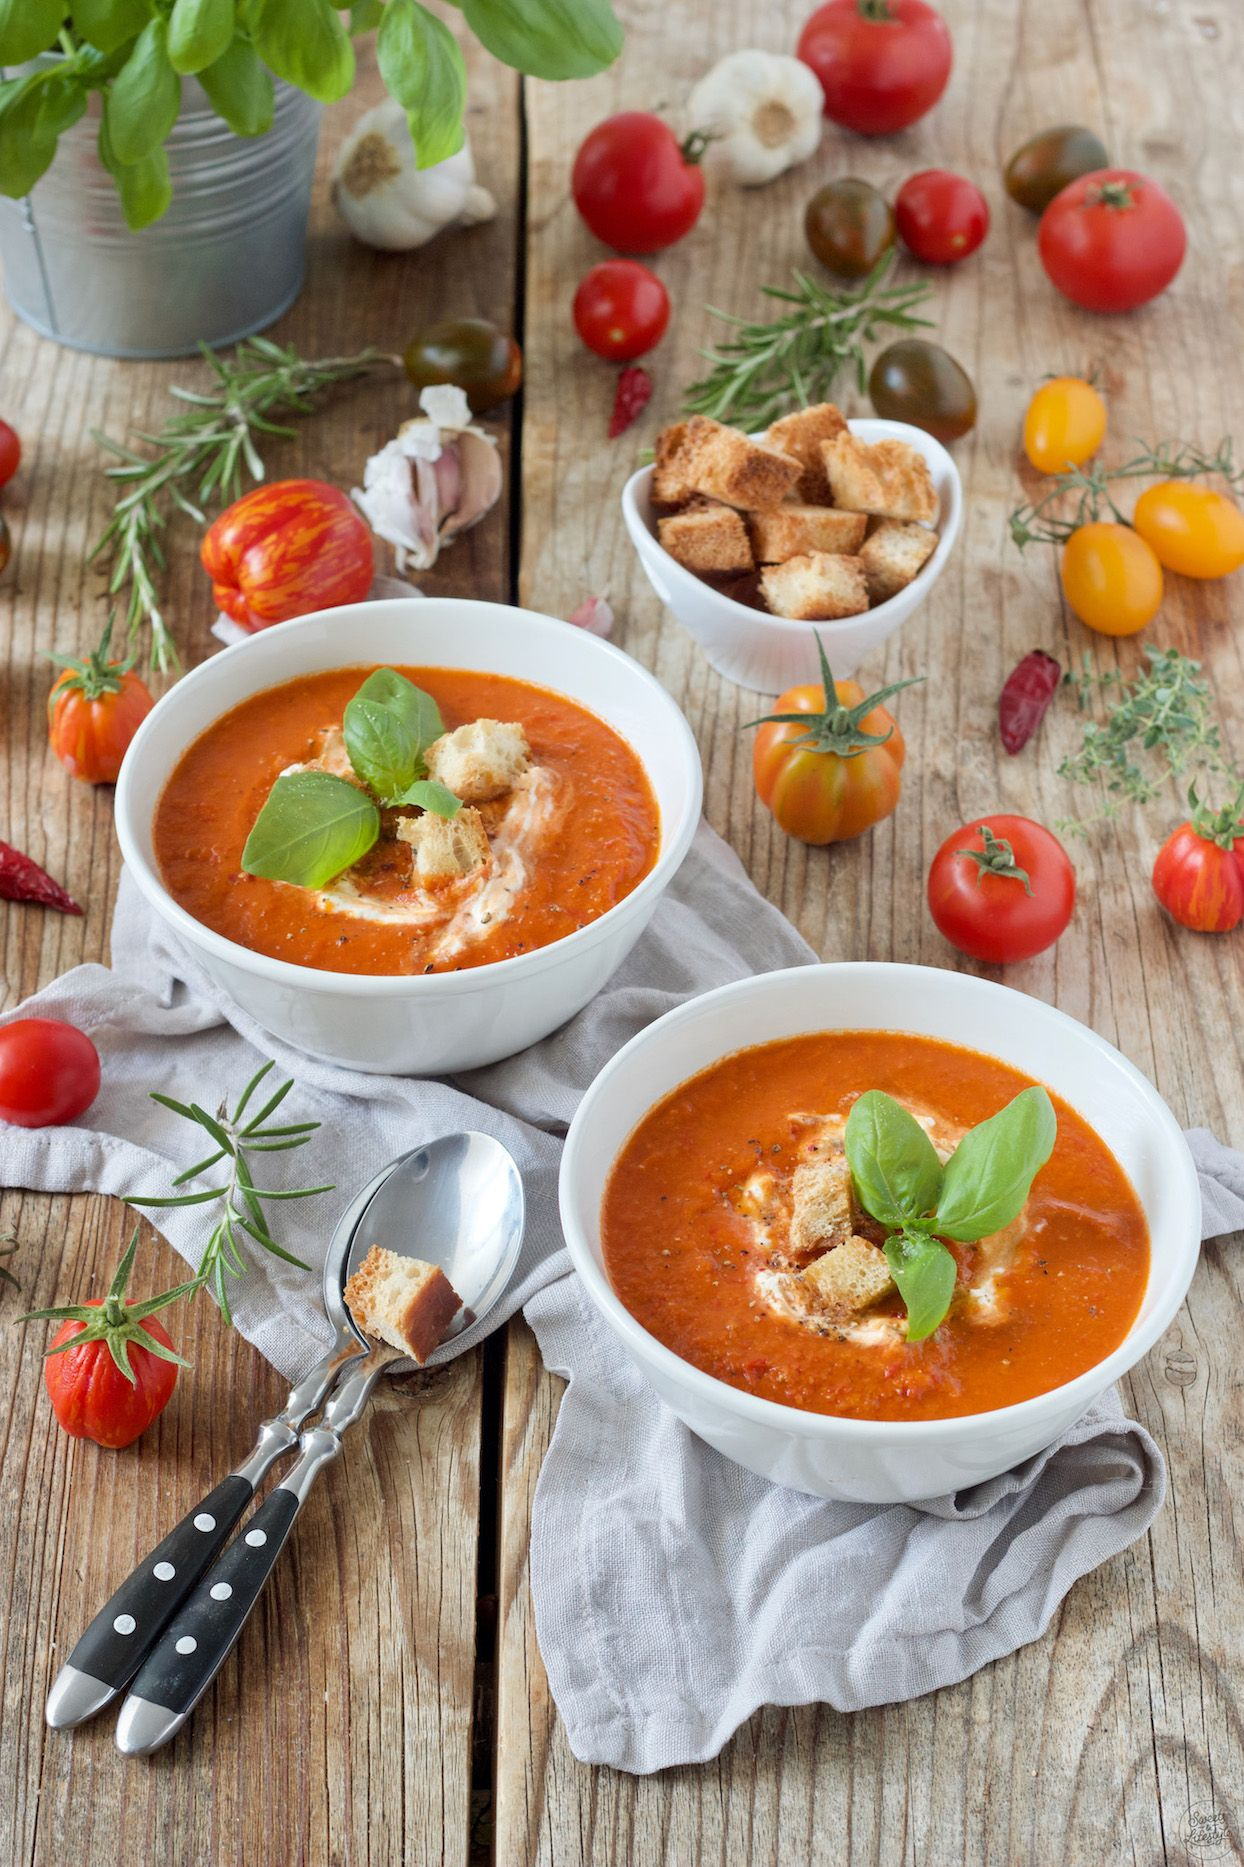 Tomatensuppe aus frischen Tomaten - Rezept - Sweets & Lifestyle® Tomatensuppe Rezept - Sommerliche Tomatensuppe mit frischen Tomaten aus dem Garten . // tomato soup recipe - make your own homemadetomato soup with this easy and delicious recipe. // Sweets & Lifestyle®️️